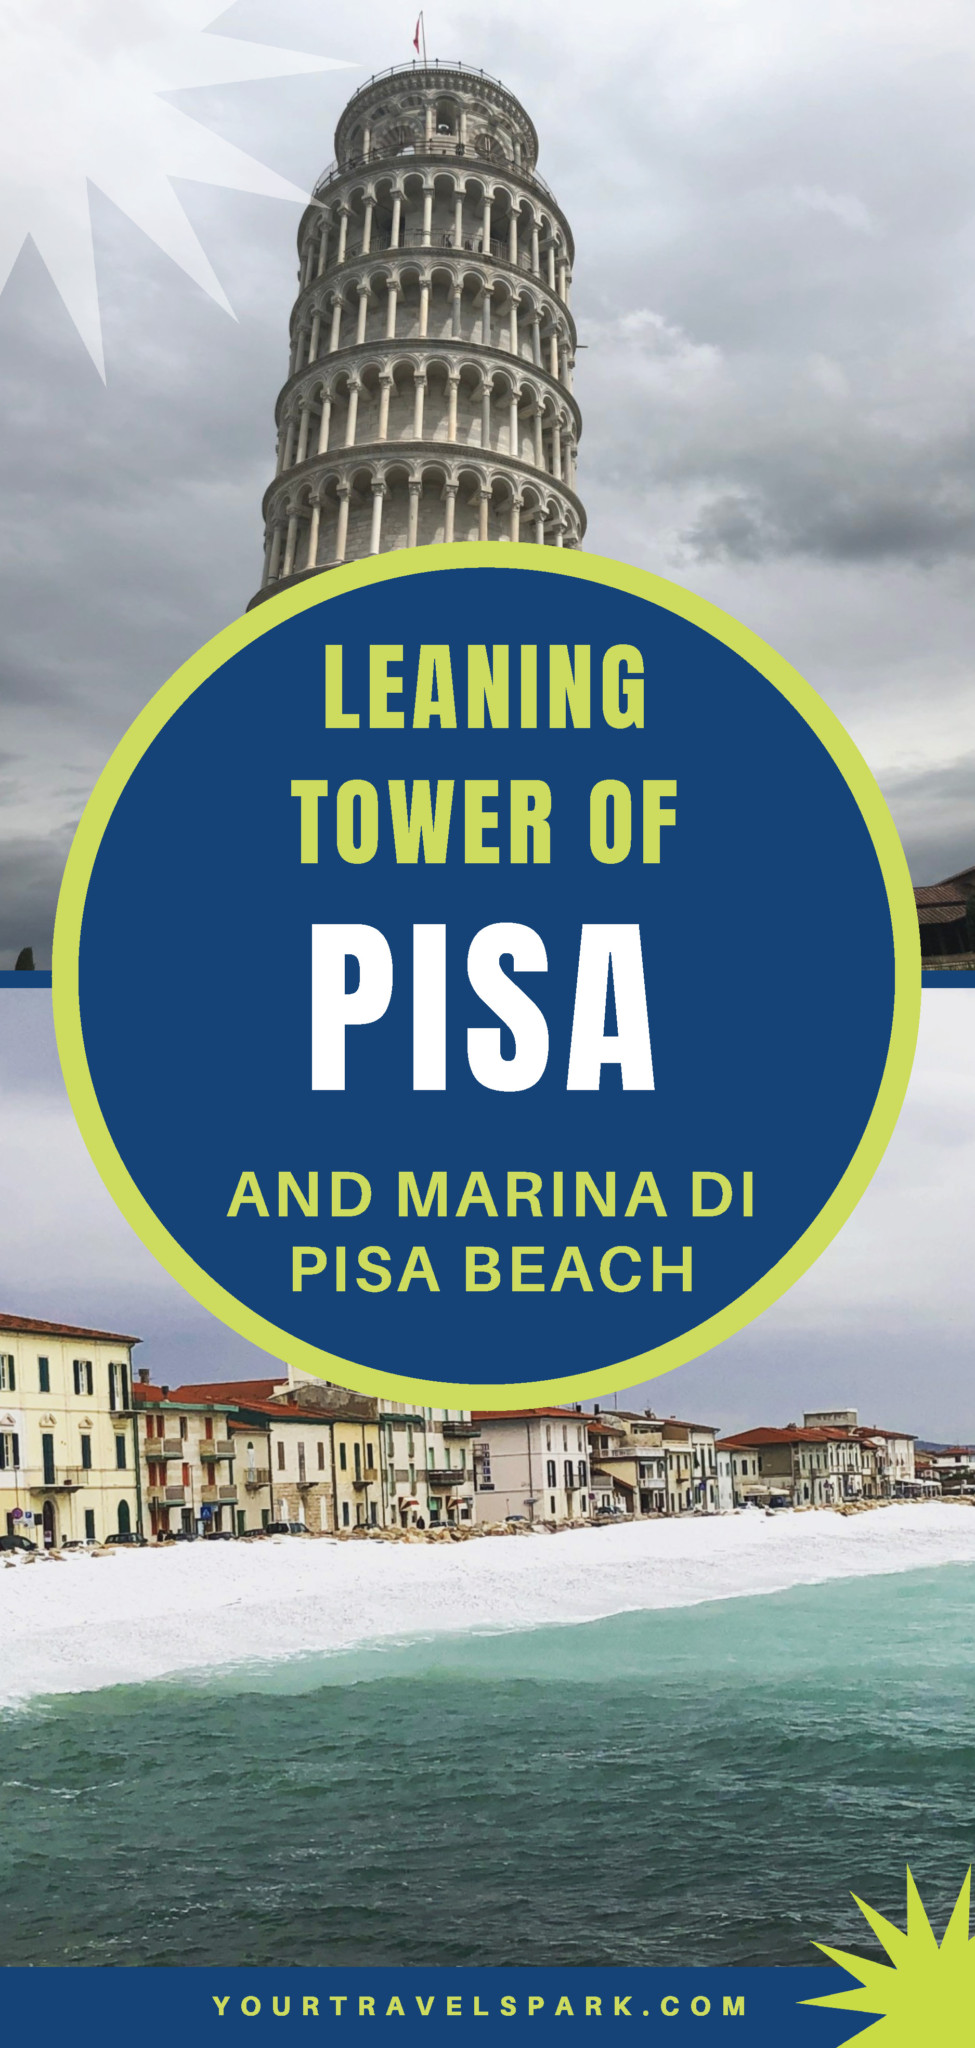 Visit the Leaning Tower of Pisa and Marina di Pisa Beach, including directions from Florence to Pisa and through Tuscany, Italy. #italy #tuscany #pisa #leaningtower #leaningtowerofpisa #marinadipisa #mediterranean #italia #pisaitaly #florence #florenceitaly #tuscanyitaly #florencetopisa